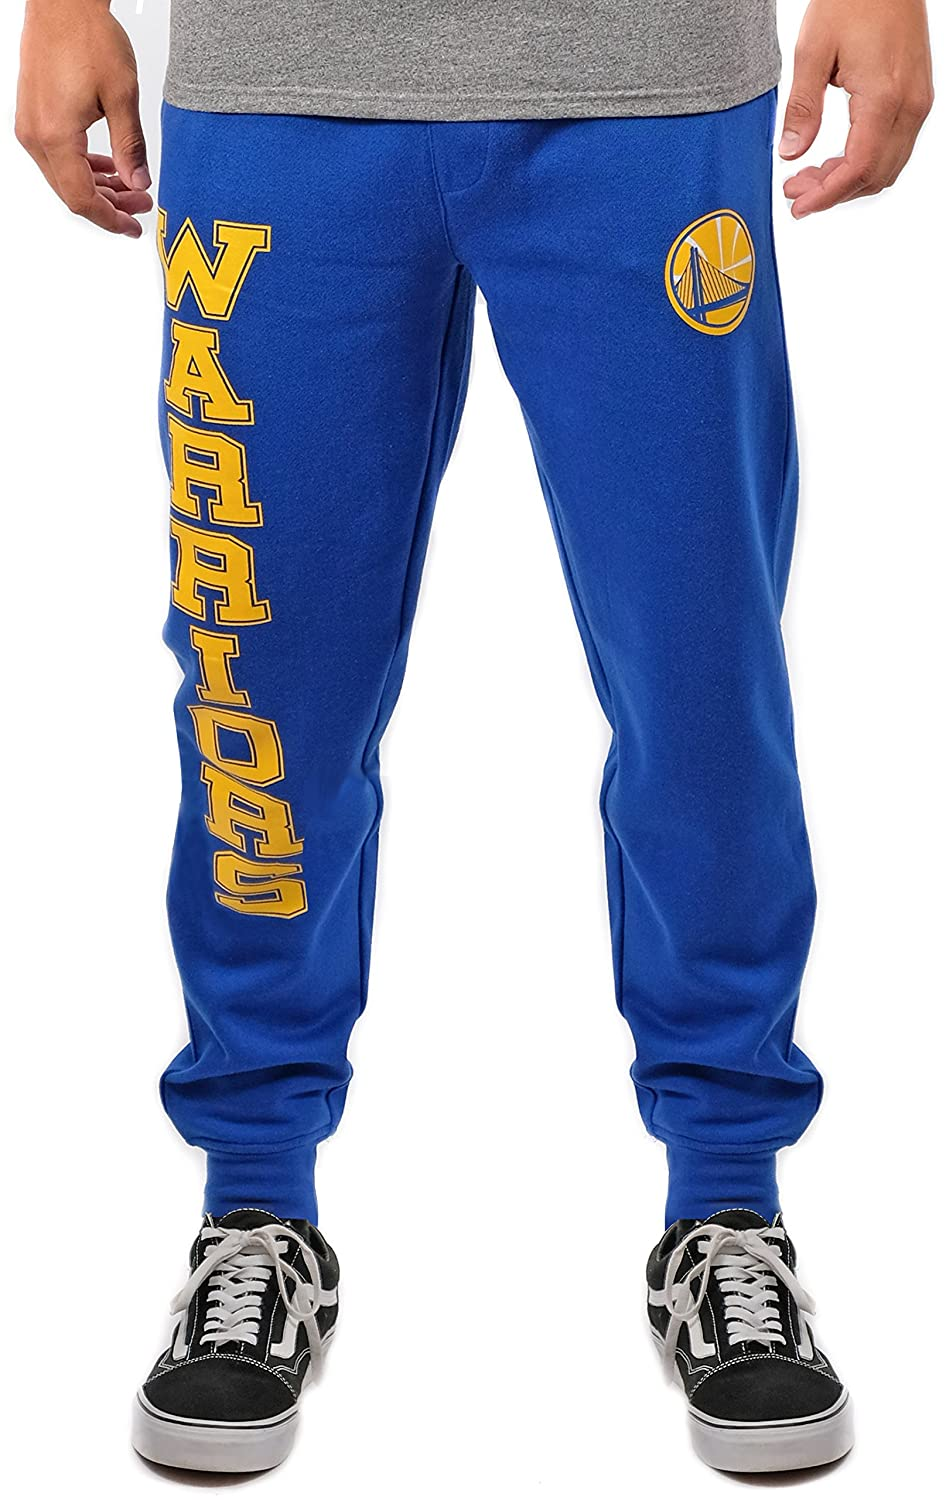 (Golden State Warriors, X-Large) - UNK NBA Men's Jogger Pants Active Basic Soft Terry Sweatpants, Team Colour   B076LQHCT4